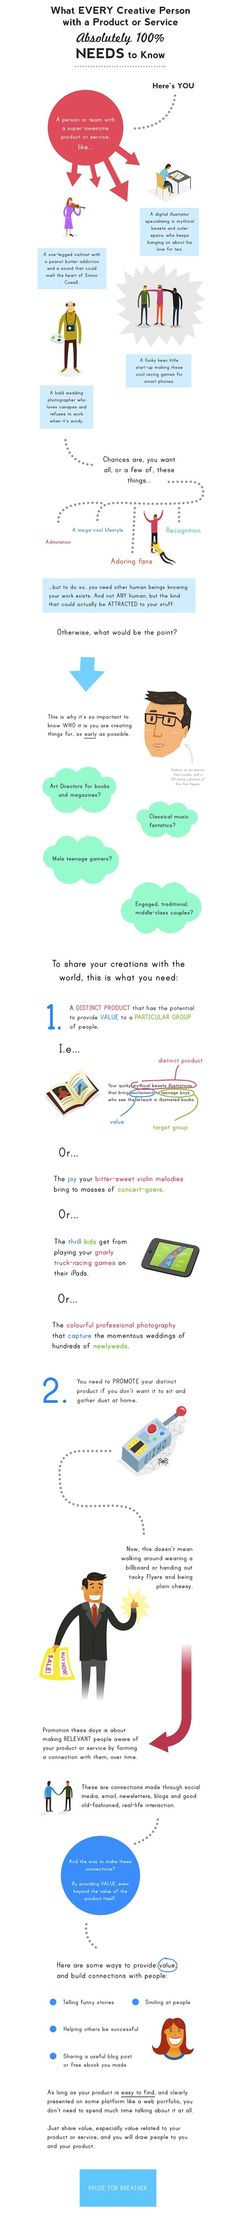 What EVERY Creative Person With A Product Or Service Absolutely 100% NEEDS To Know #infographic